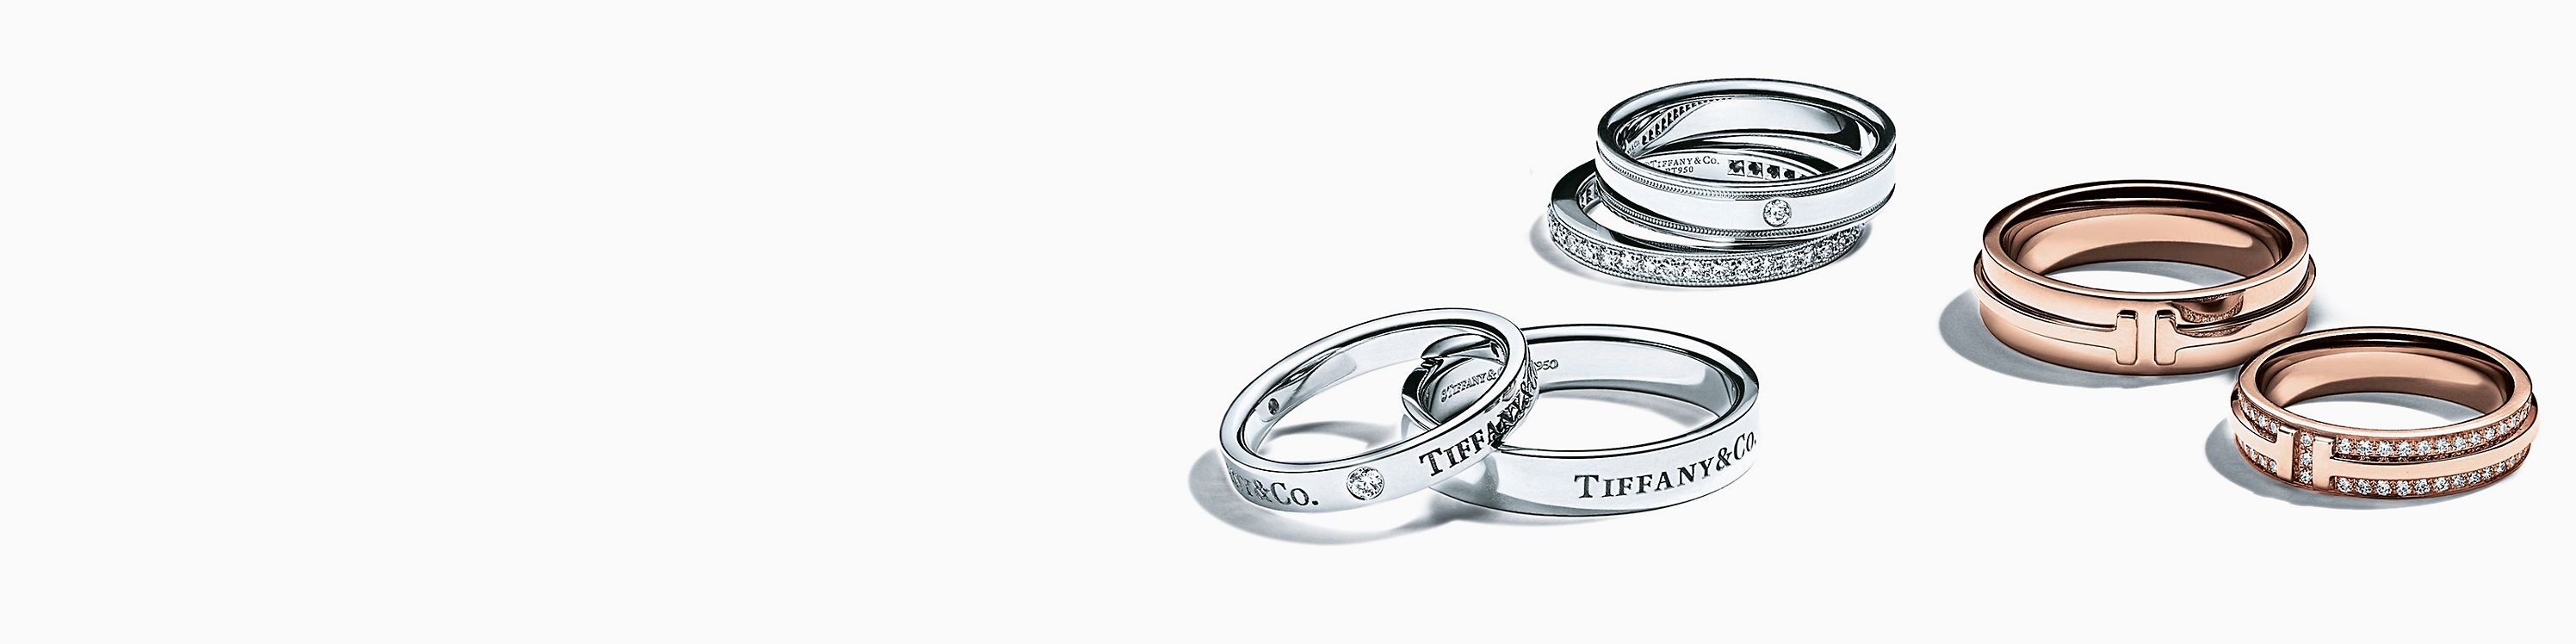 b0663ba6ce5d0 Wedding Band Sets | Tiffany & Co.